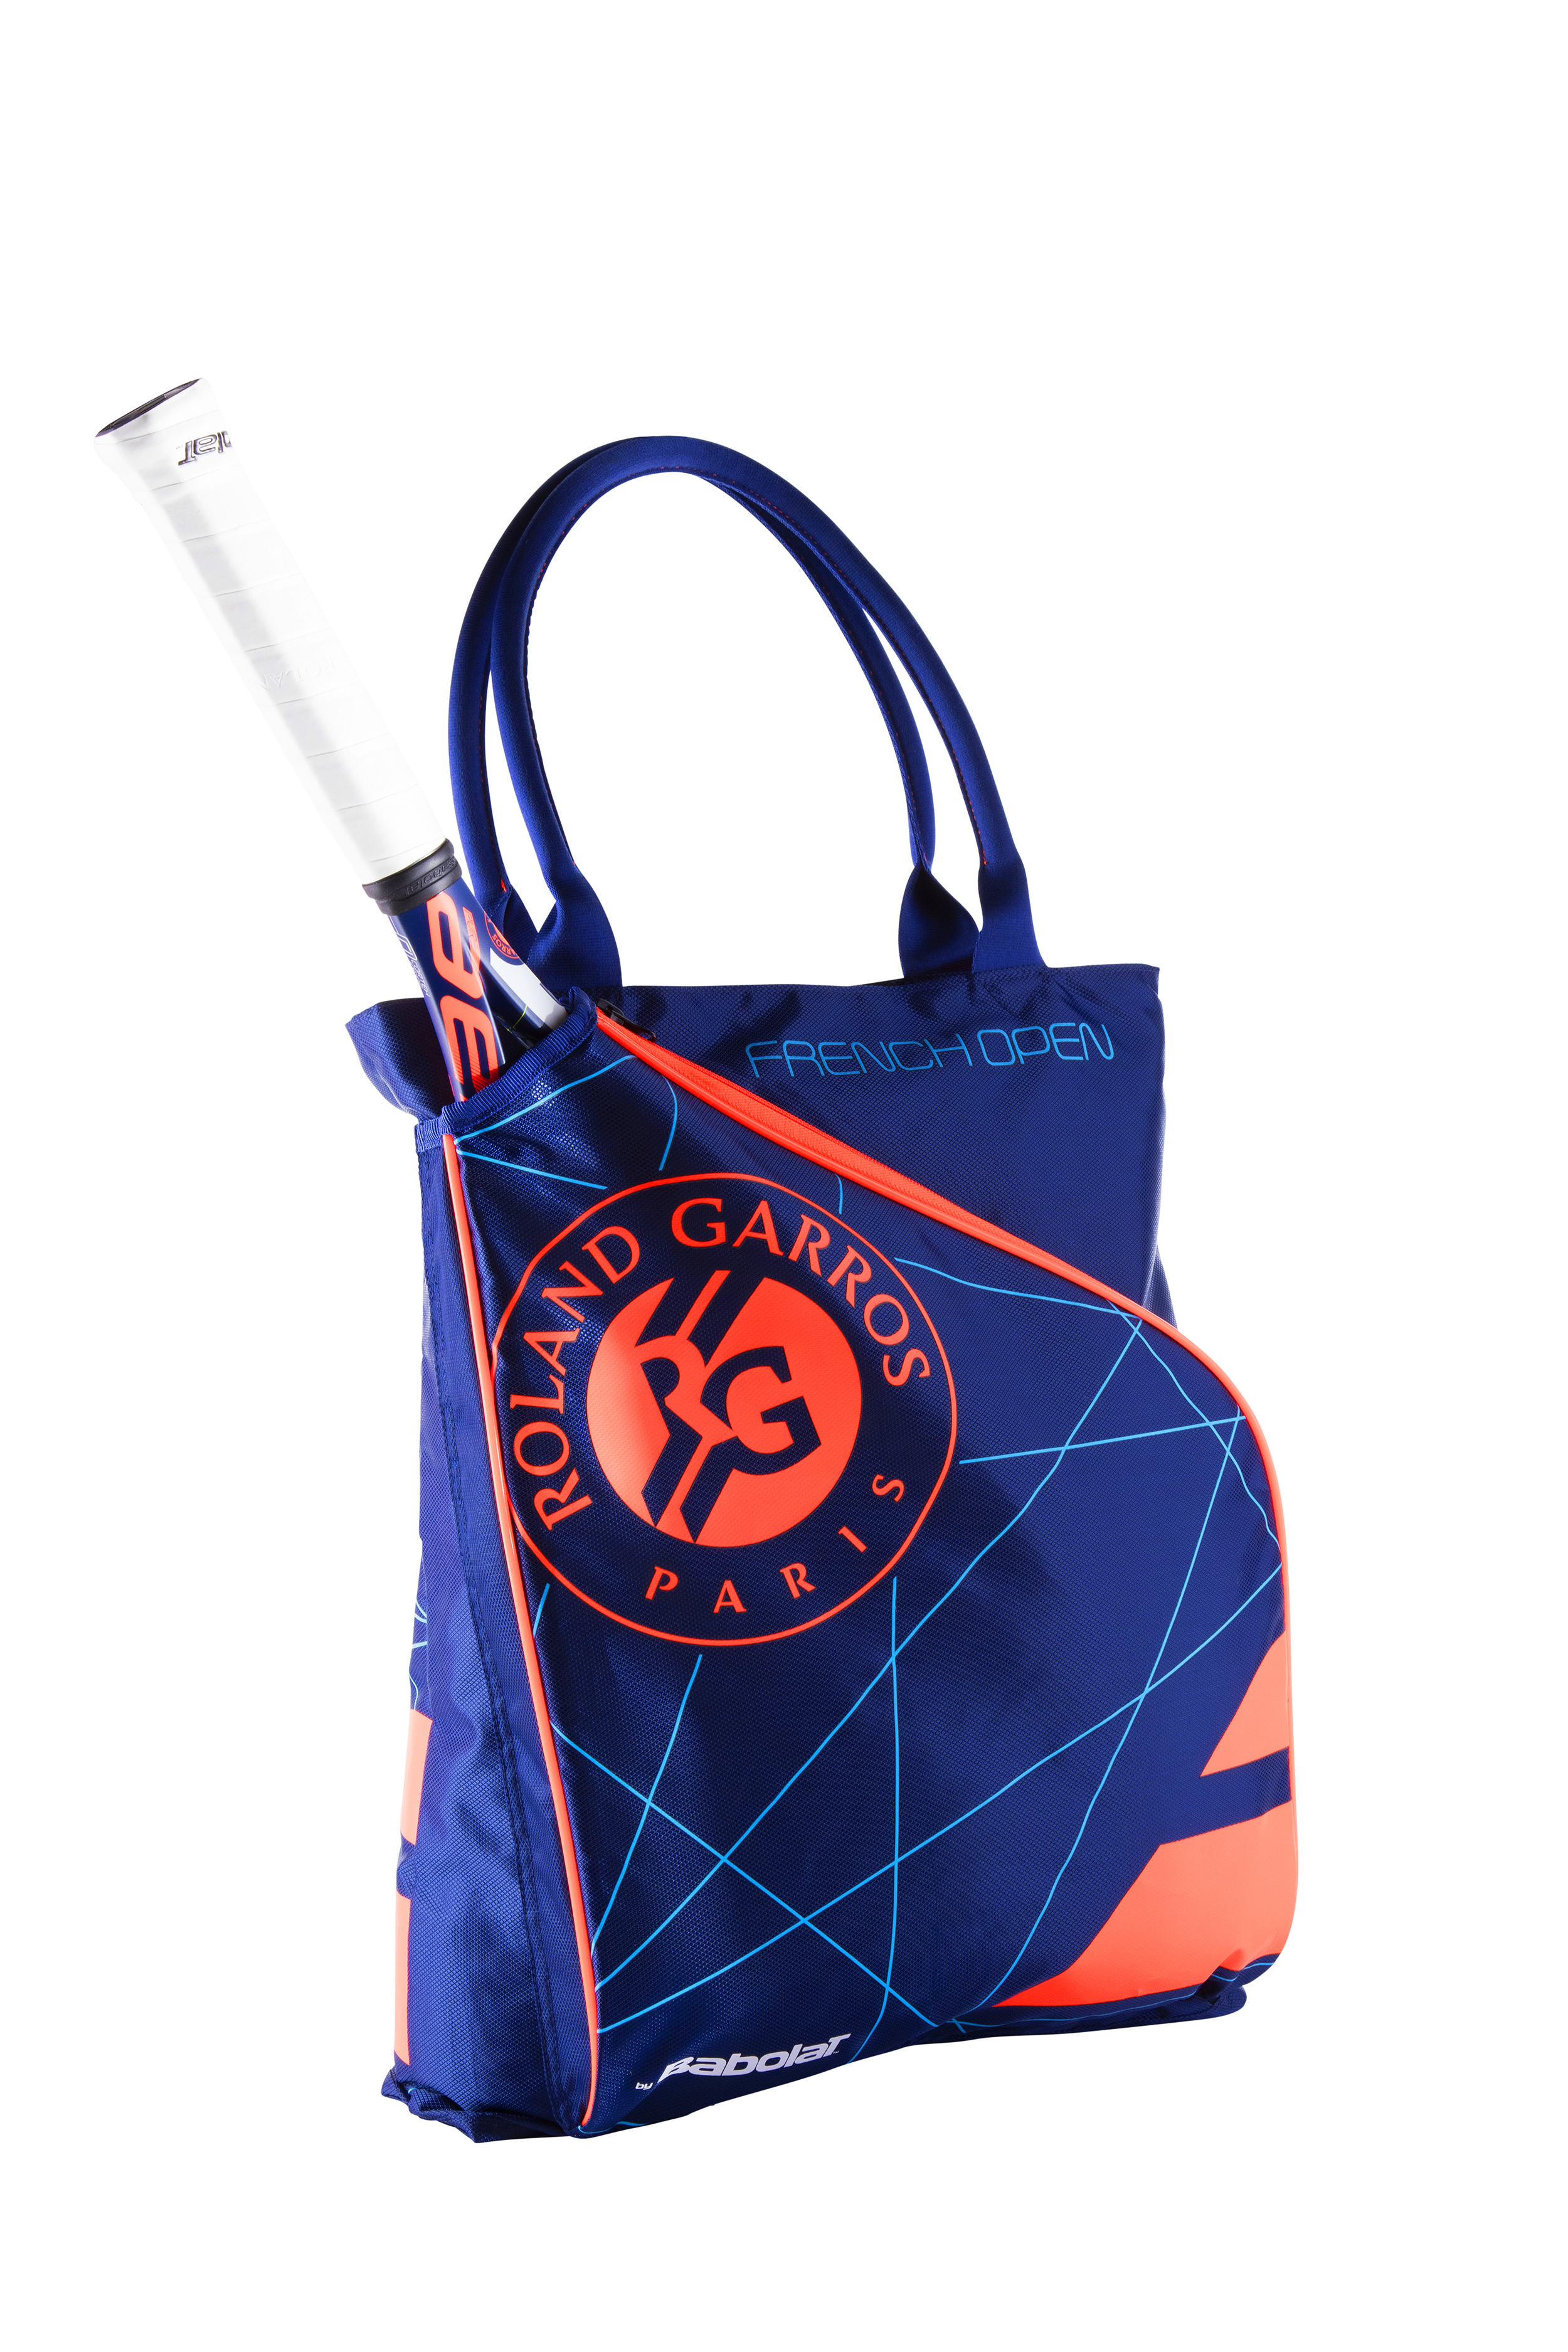 Babolat Tote Bag French Open 2017